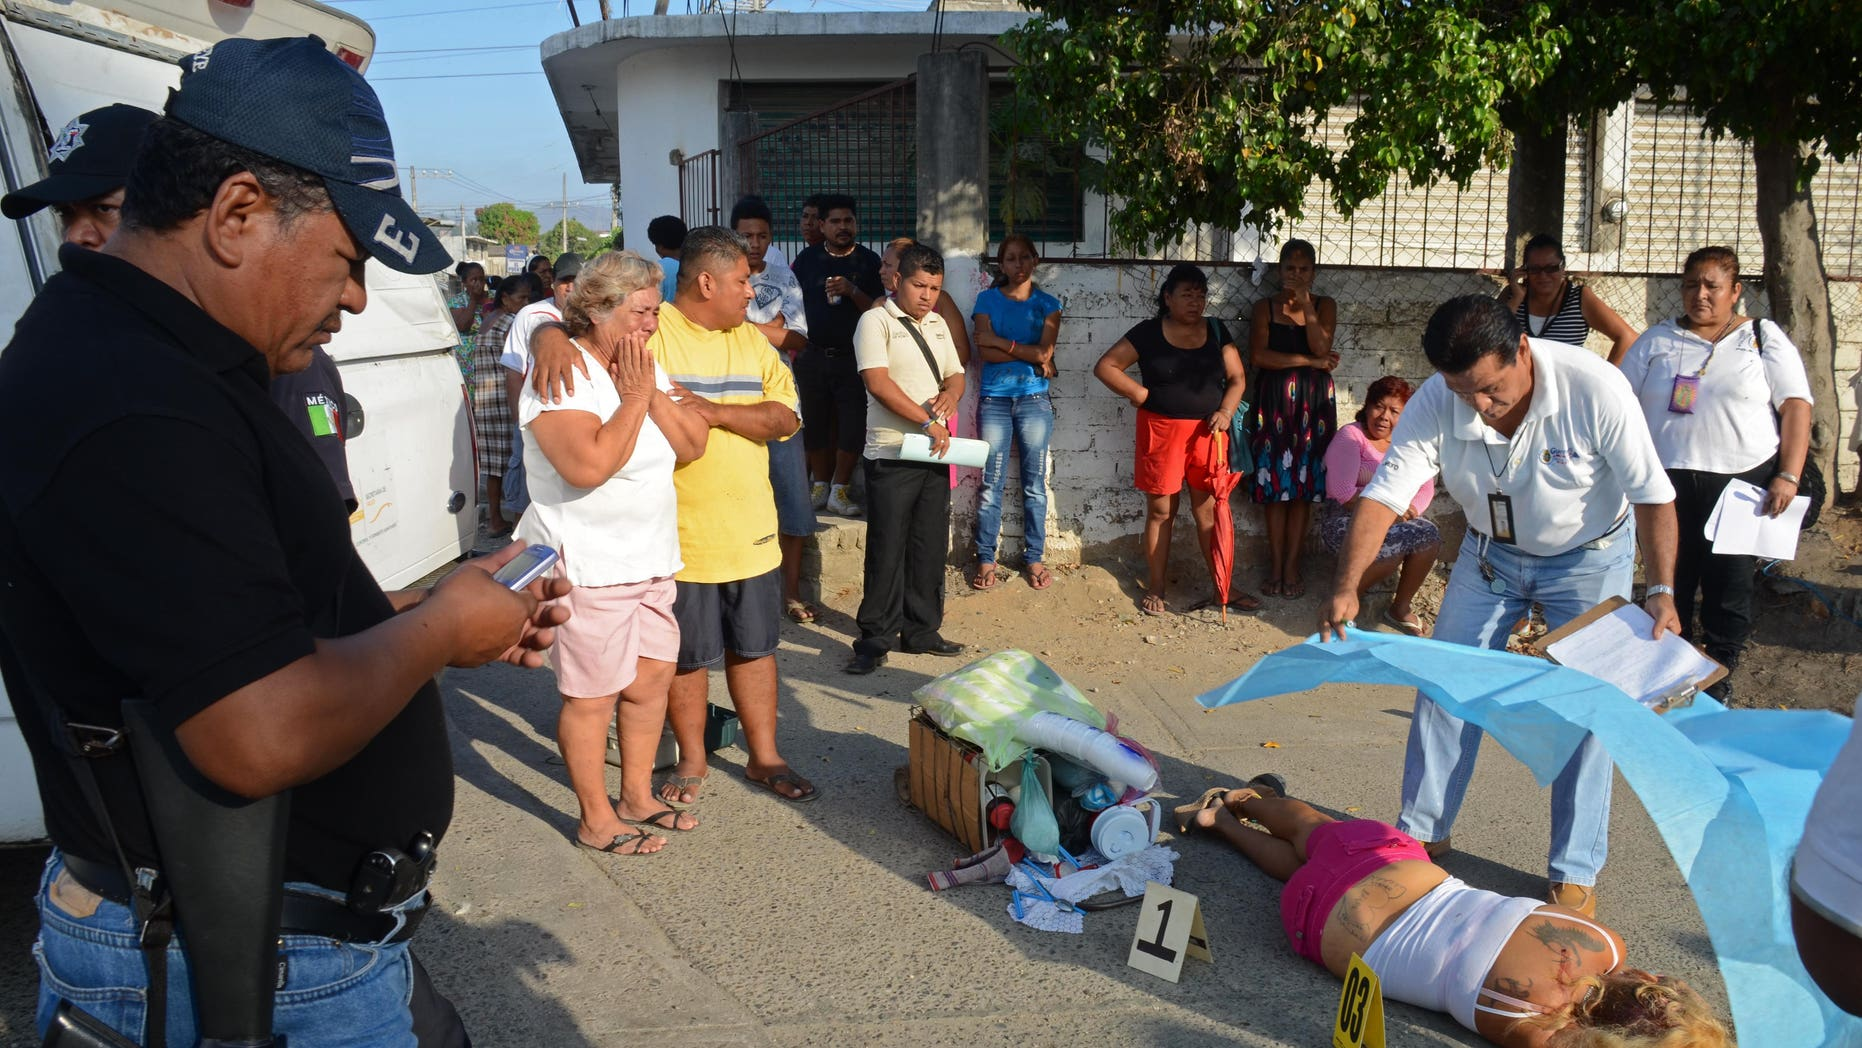 A forensic worker covers the body of a woman who was shot dead by assailants, whose daughter was also killed, while she was selling coffee on a street corner in Acapulco, Mexico, Tuesday, April 9, 2013. Violence, kidnappings and extortions carried out by drug cartels continue to plague this Pacific resort city which has witnessed a large increase in violent crimes during the past years. (AP Photo/Bernandino Hernandez)